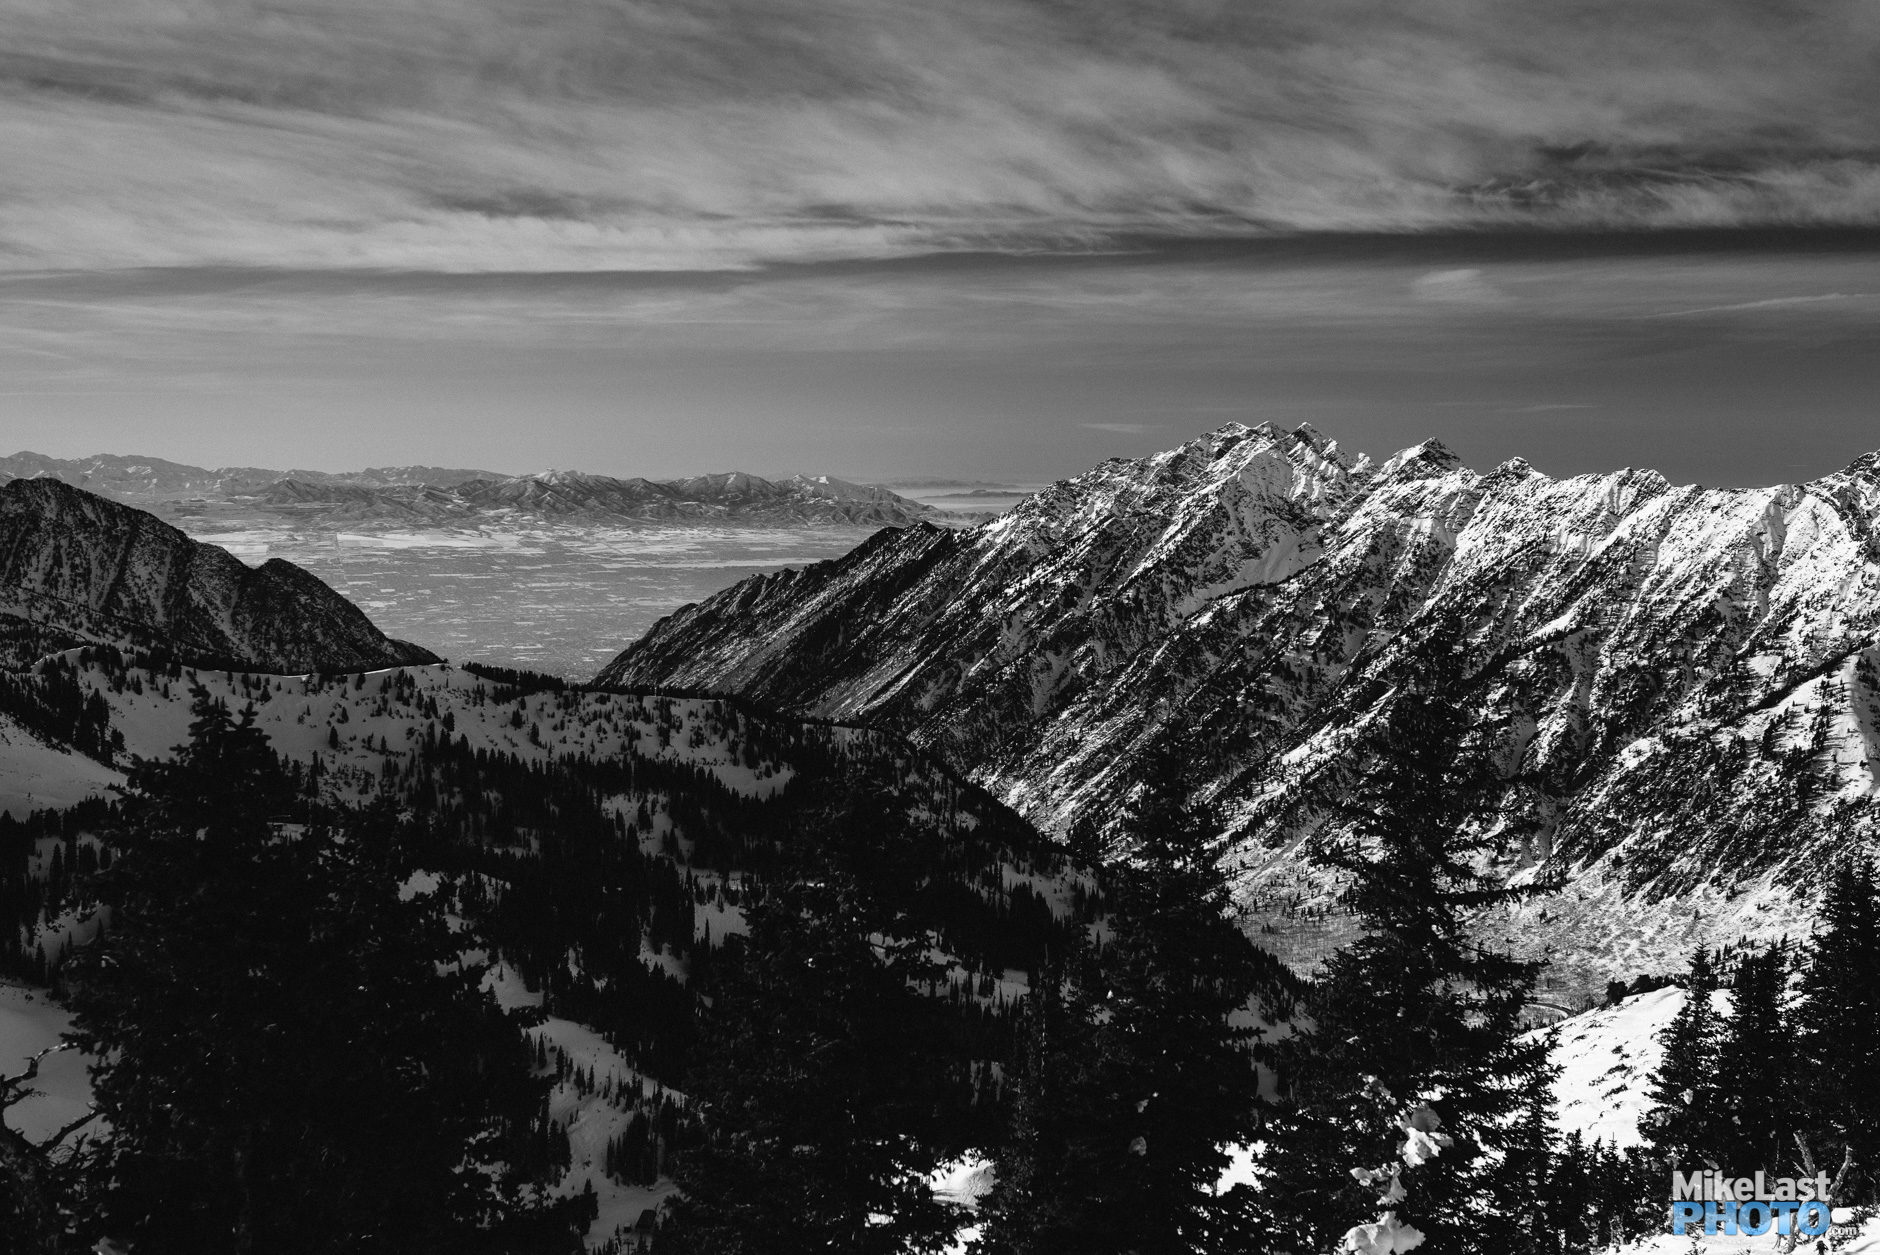 Mt. Superior and the Oquirrhs from Snowbird, UT.